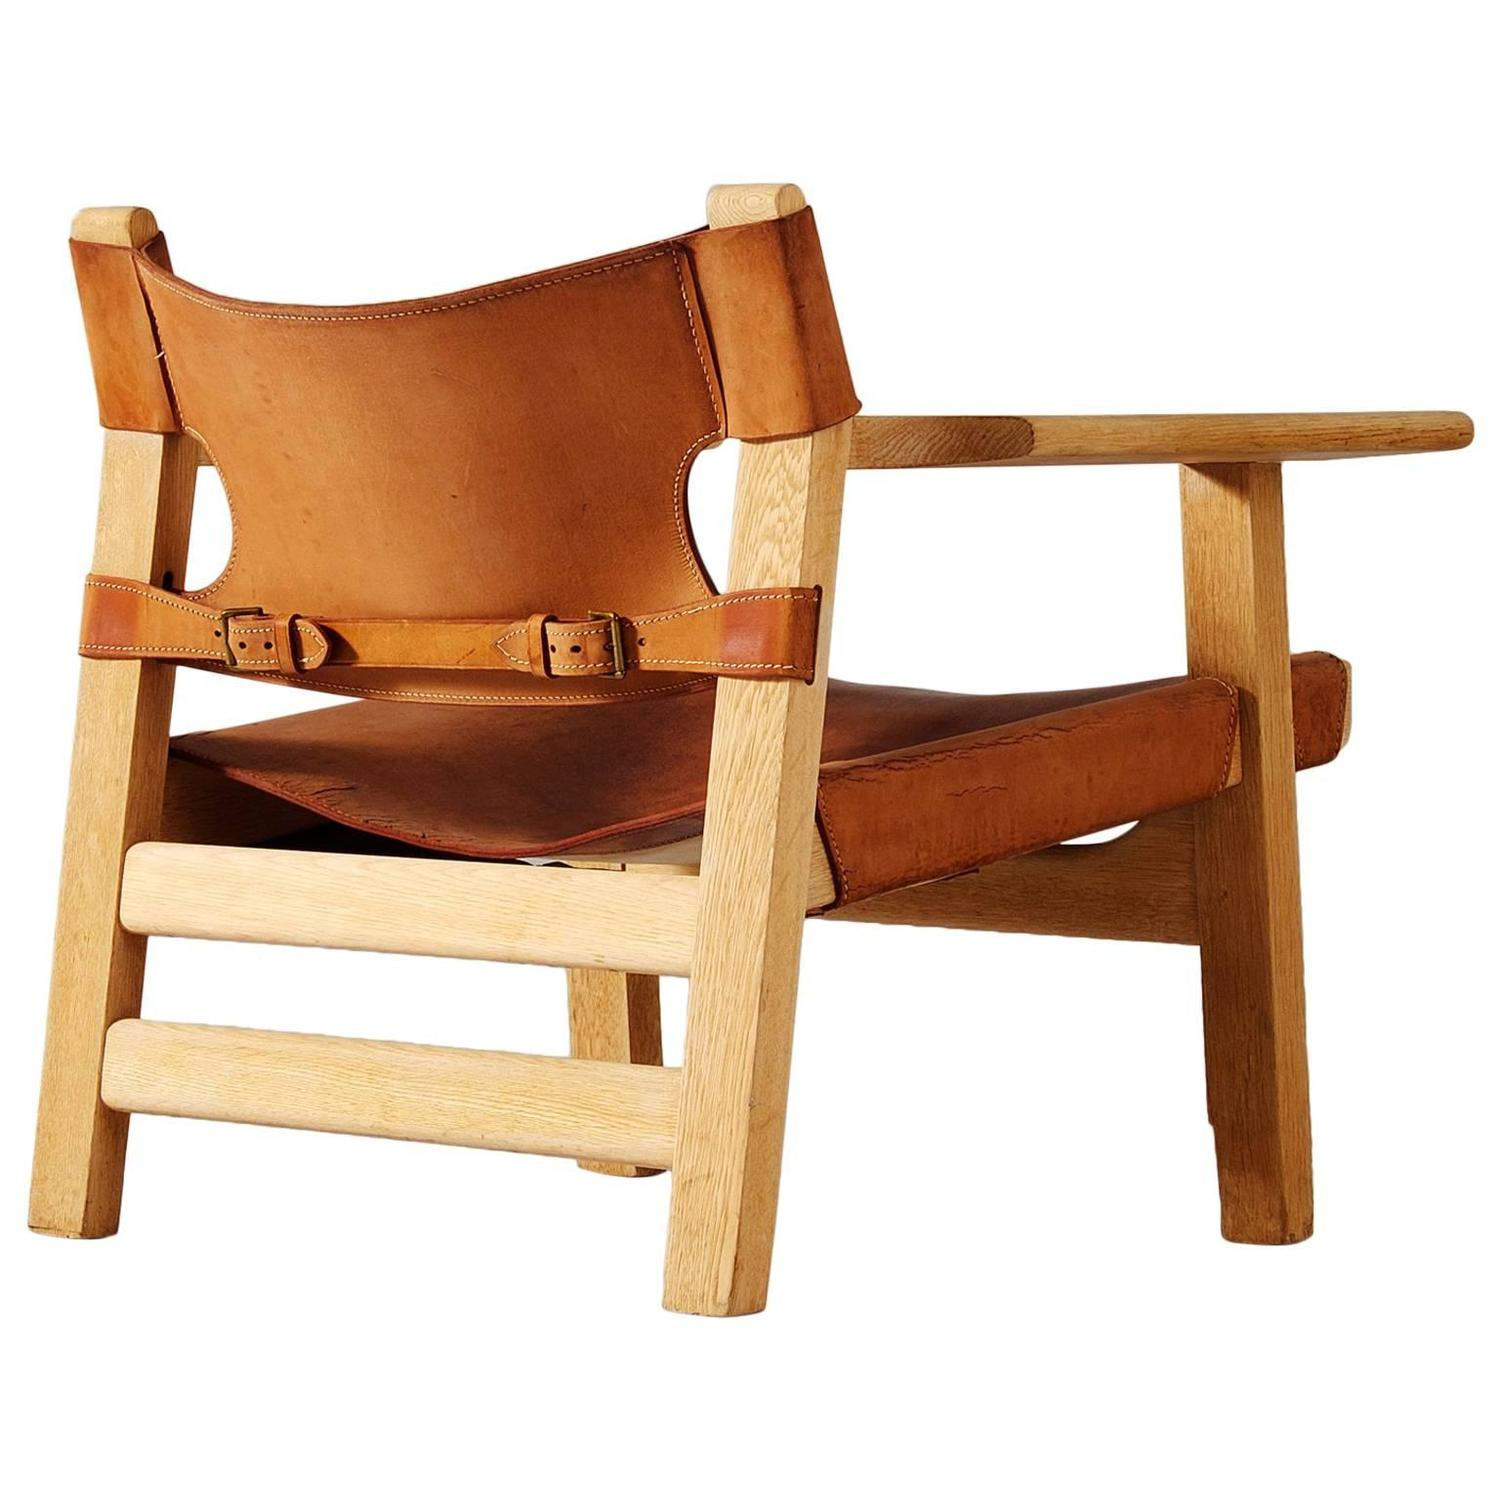 Leather and Wood Spanish Style Chairs Saddle Leather at 1stdibs